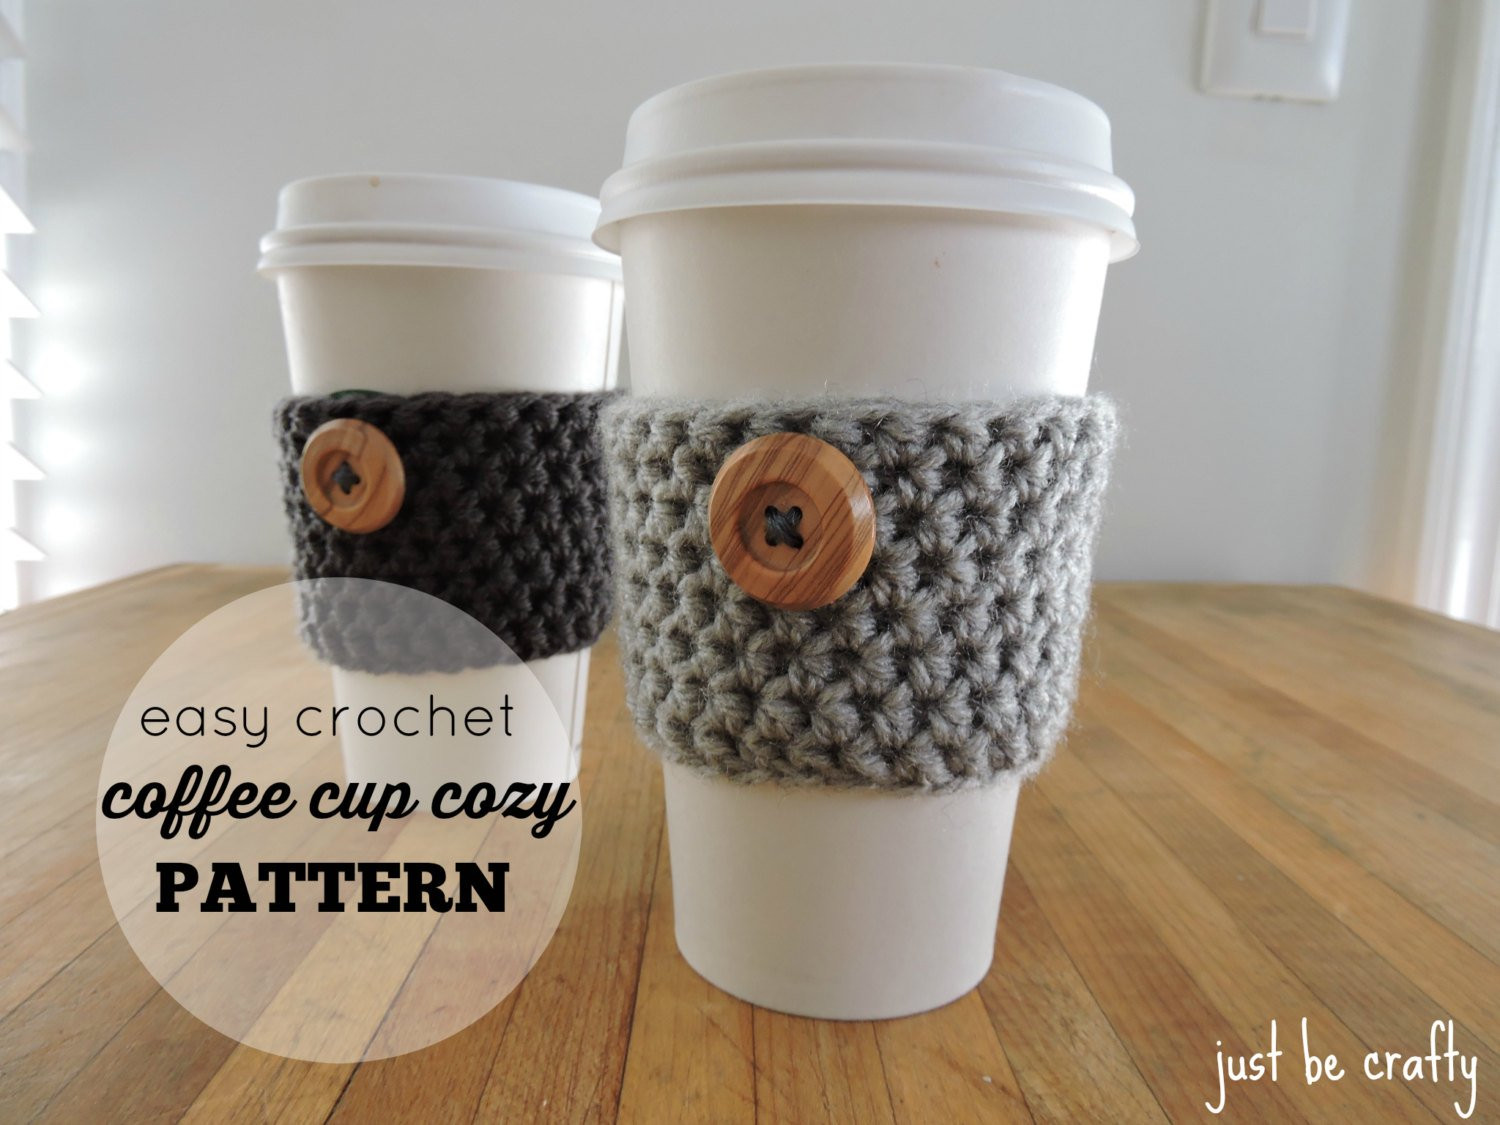 Crochet Coffee Cup Cozy Inspirational Crochet Coffee Cup Cozy Pattern Pdf Download Coffee Cup Cozy Of Crochet Coffee Cup Cozy Best Of Craftdrawer Crafts Free Easy to Crochet Mug Cozy Patterns